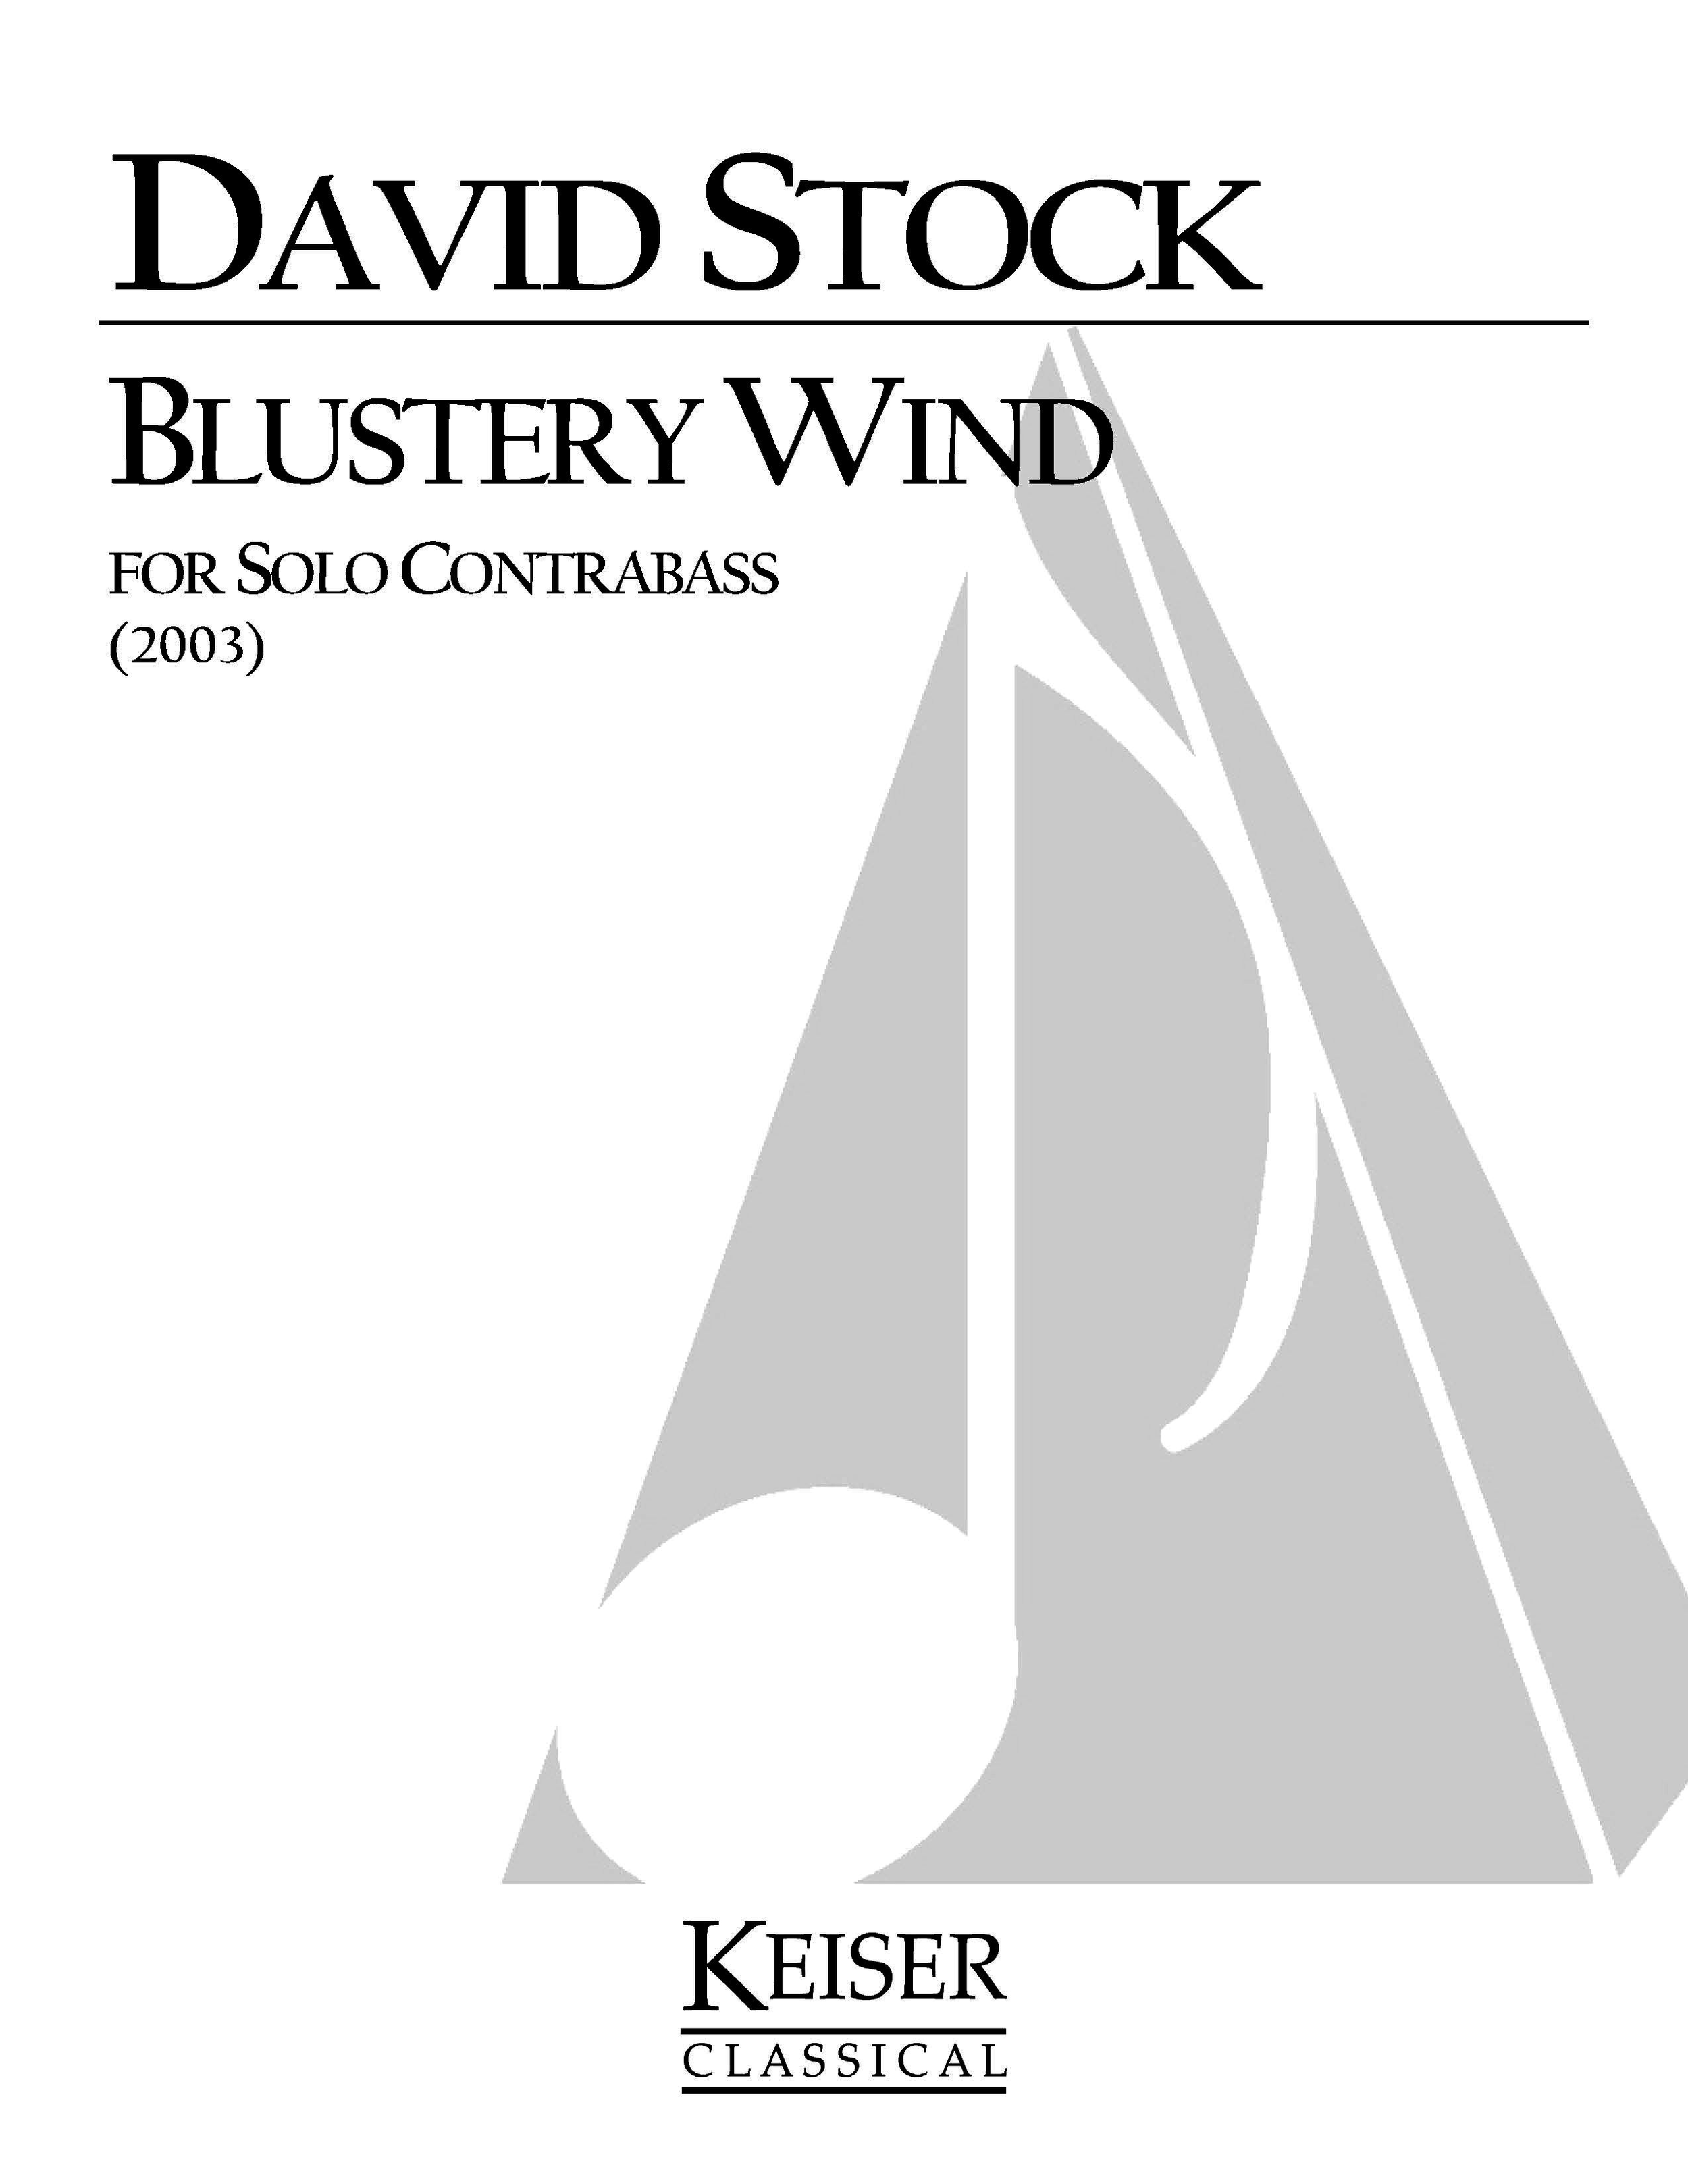 Blustery Wind (2003) - Double Bass SoloRent/Buy: Keiser Music